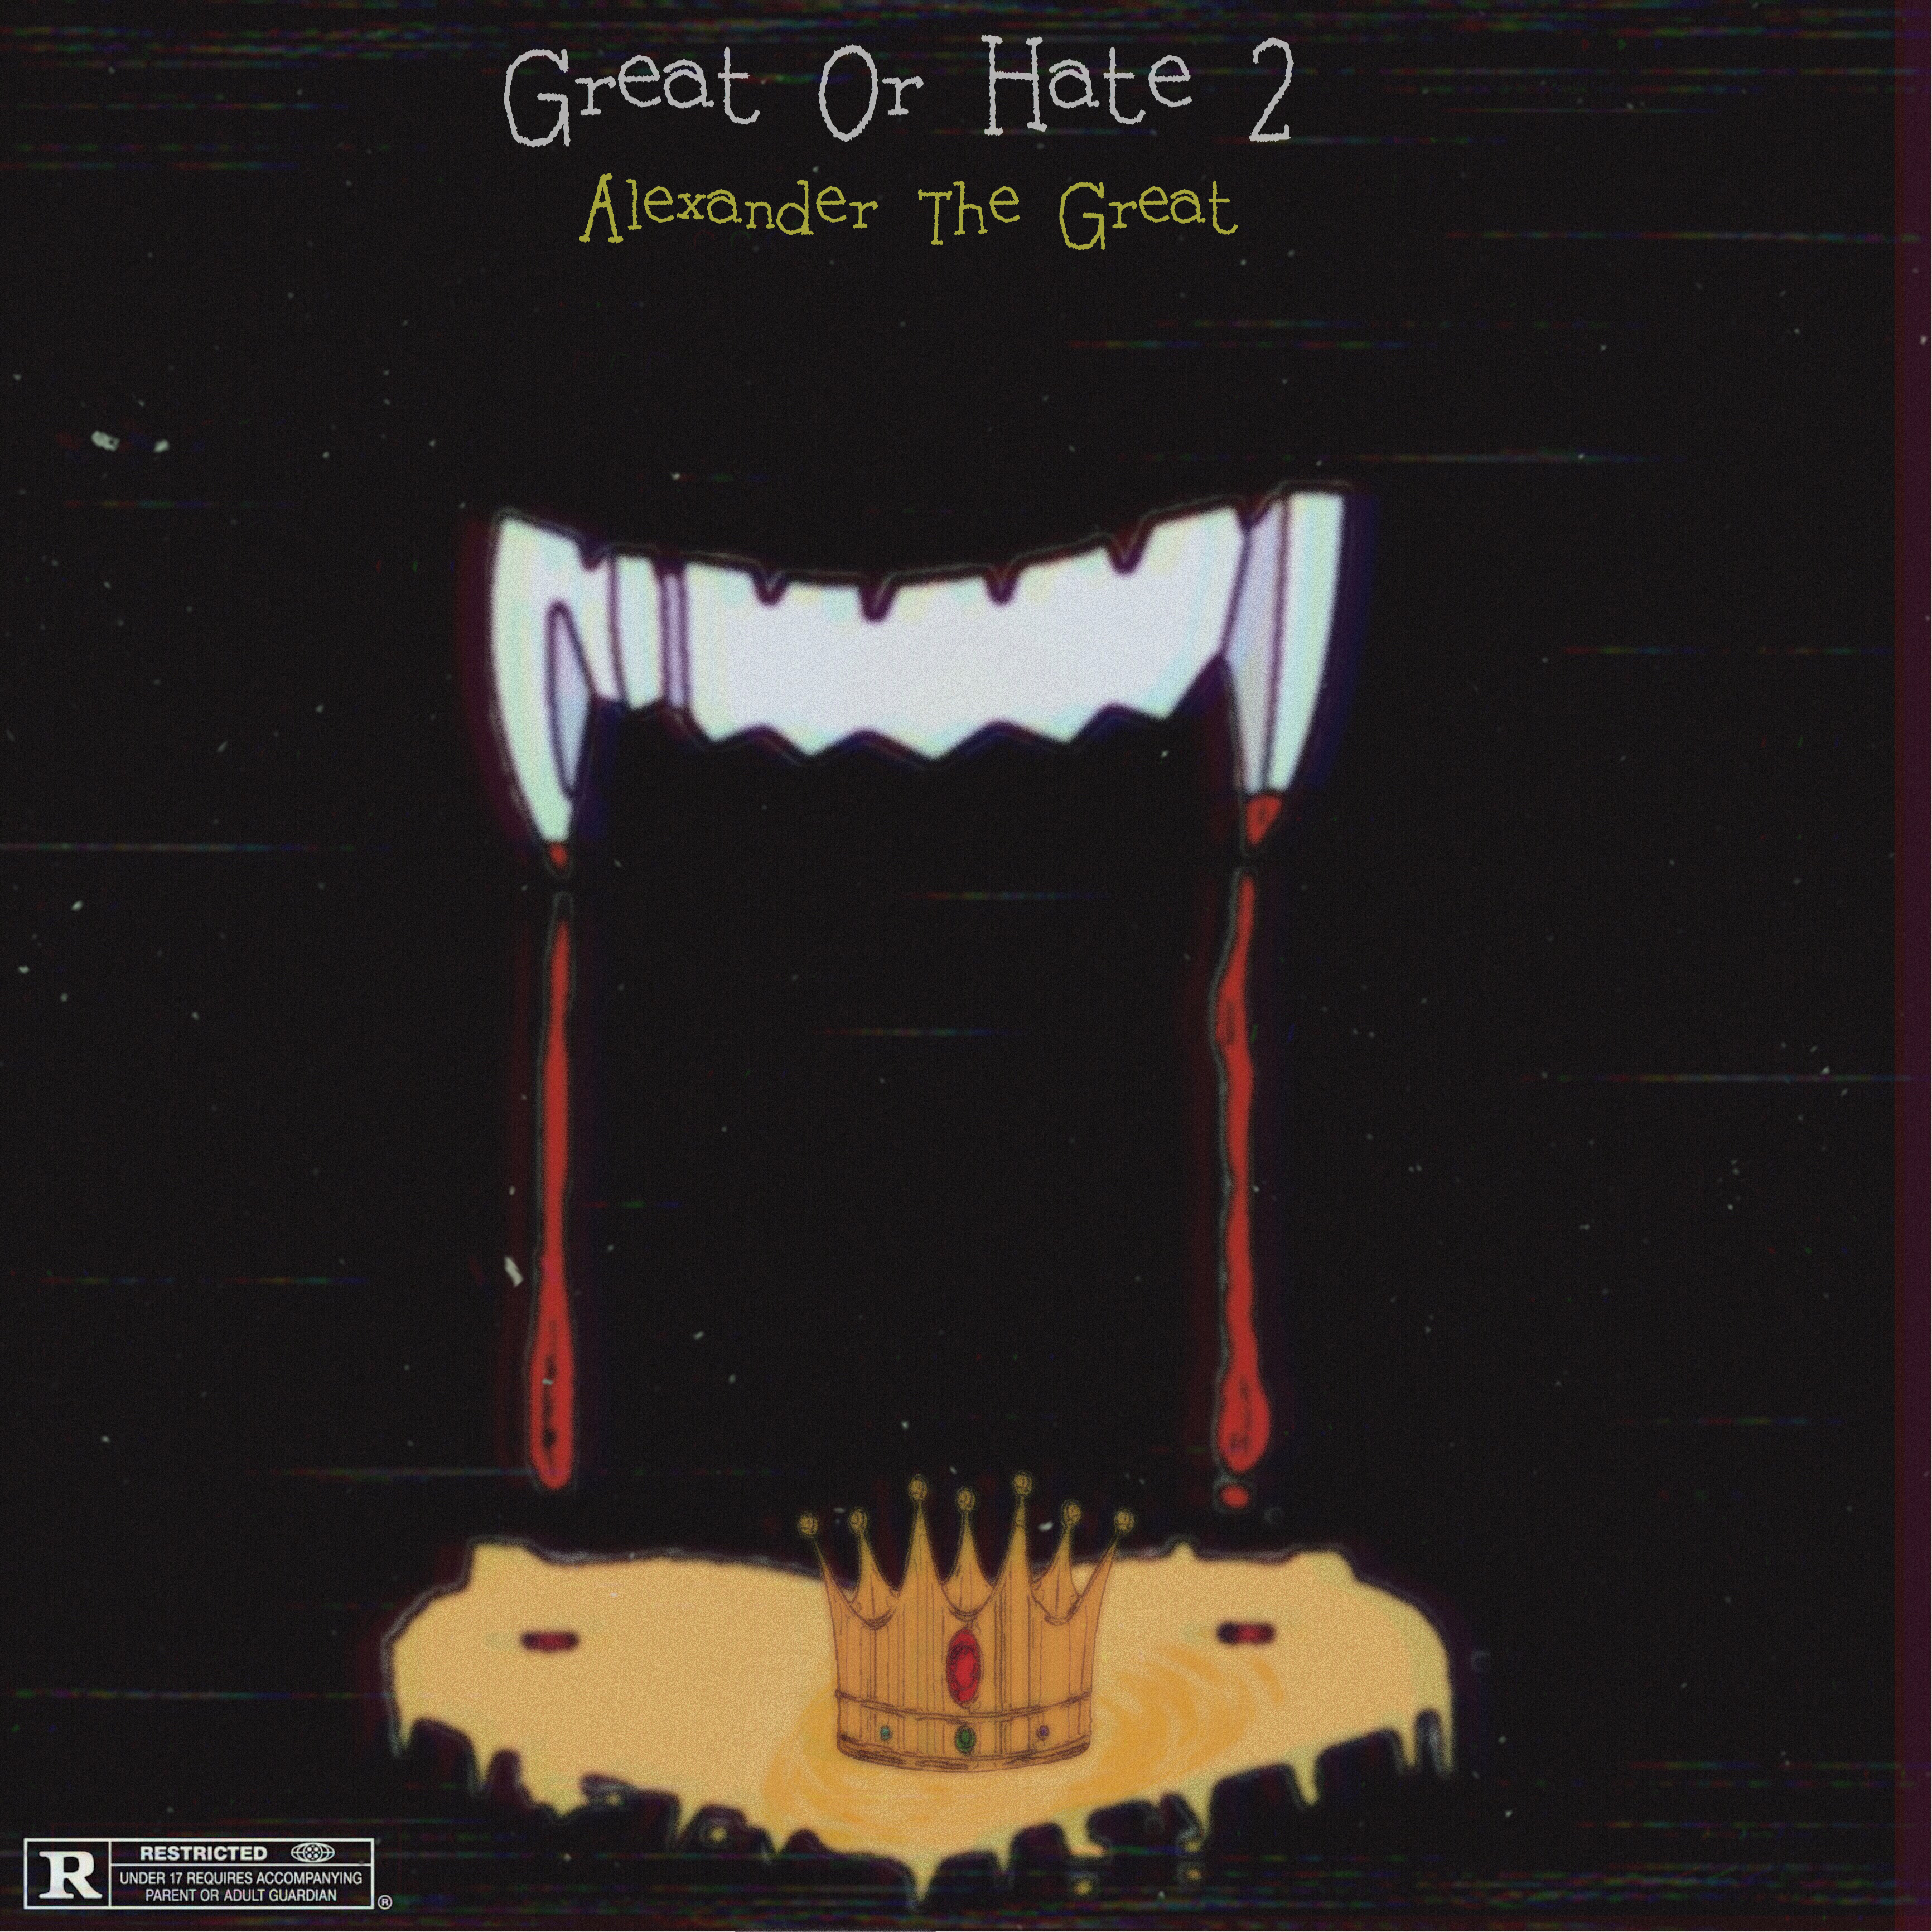 Alexander The Great - Great Or Hate 2 | Spinrilla